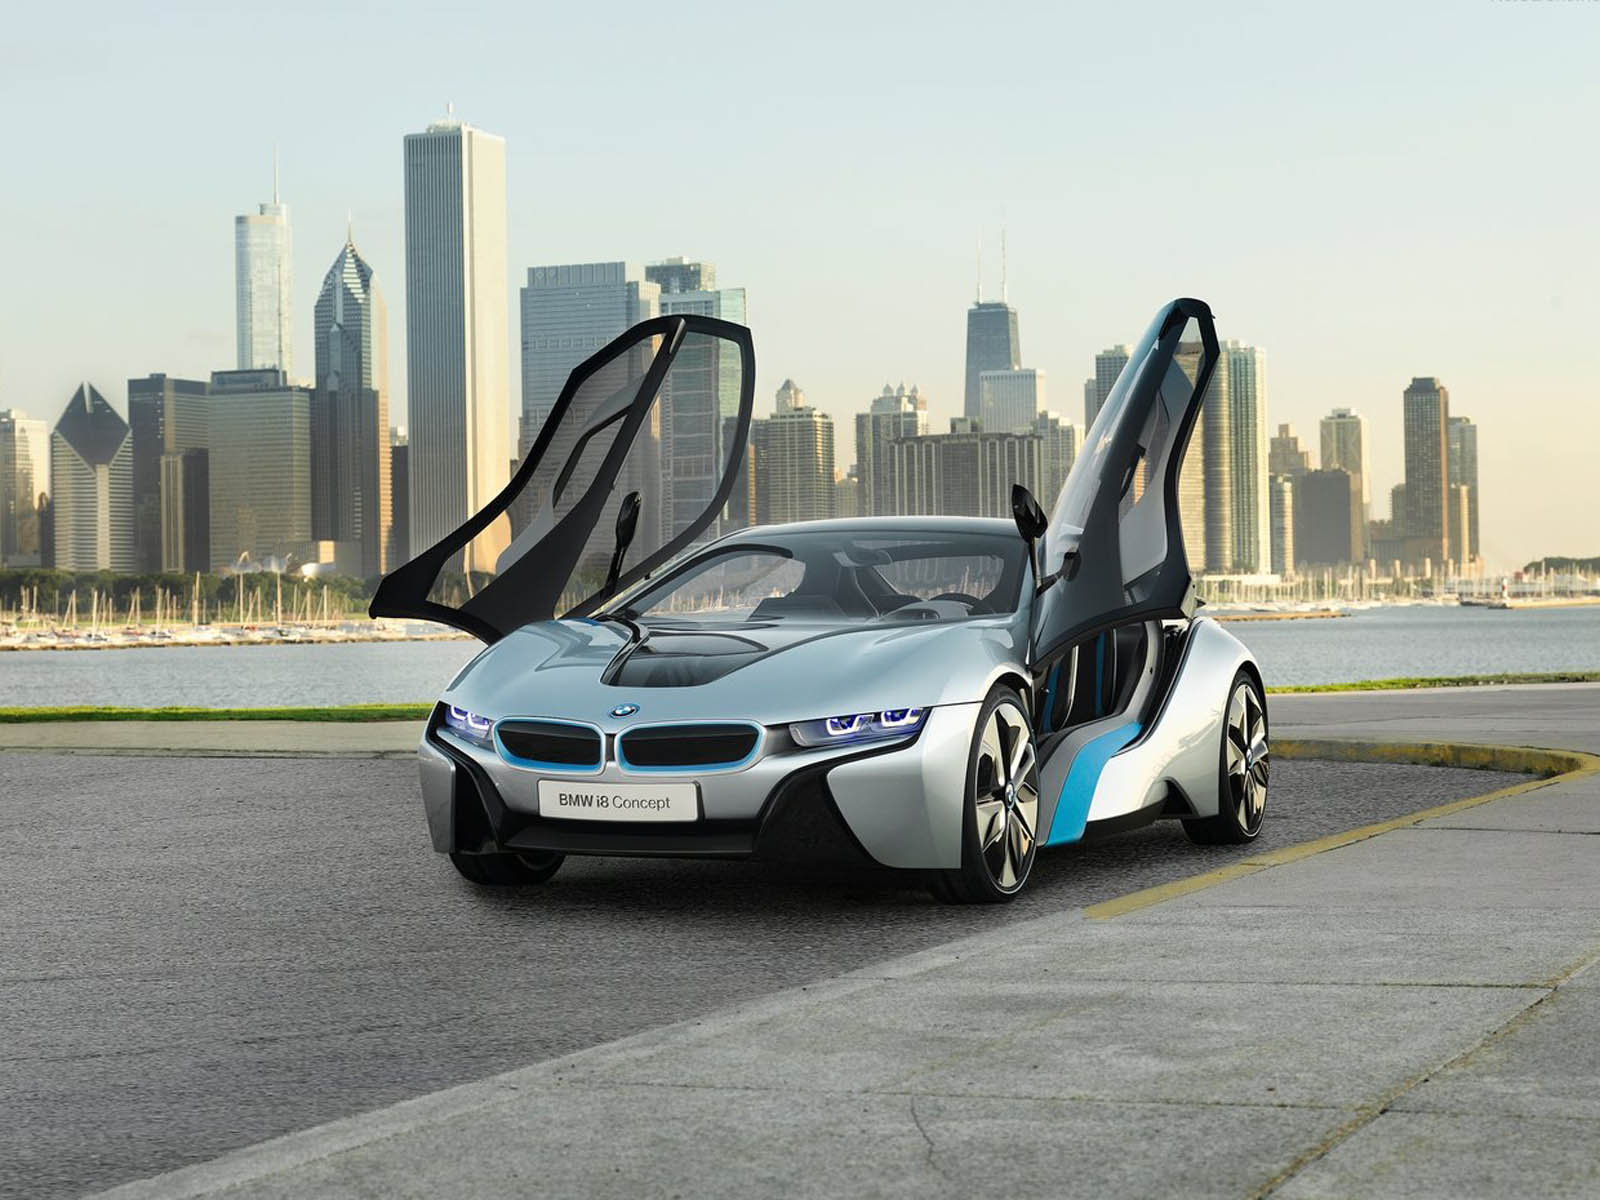 BMW i8 Concept Wallpaper ~ Gallery Car HD Wallpapers